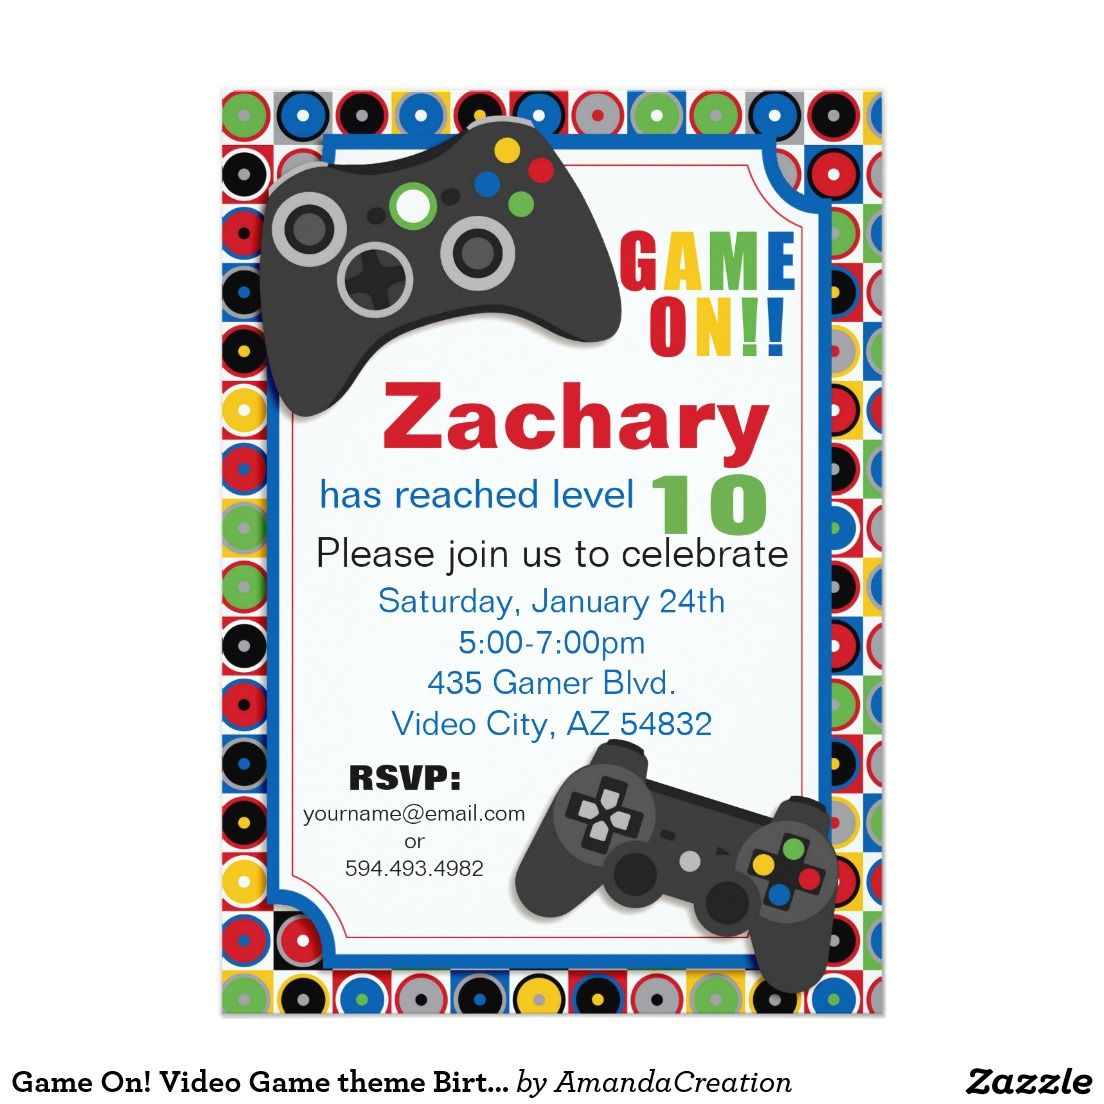 Game on video game theme birthday party invitatio card video game on video game theme birthday party invitatio card stopboris Gallery